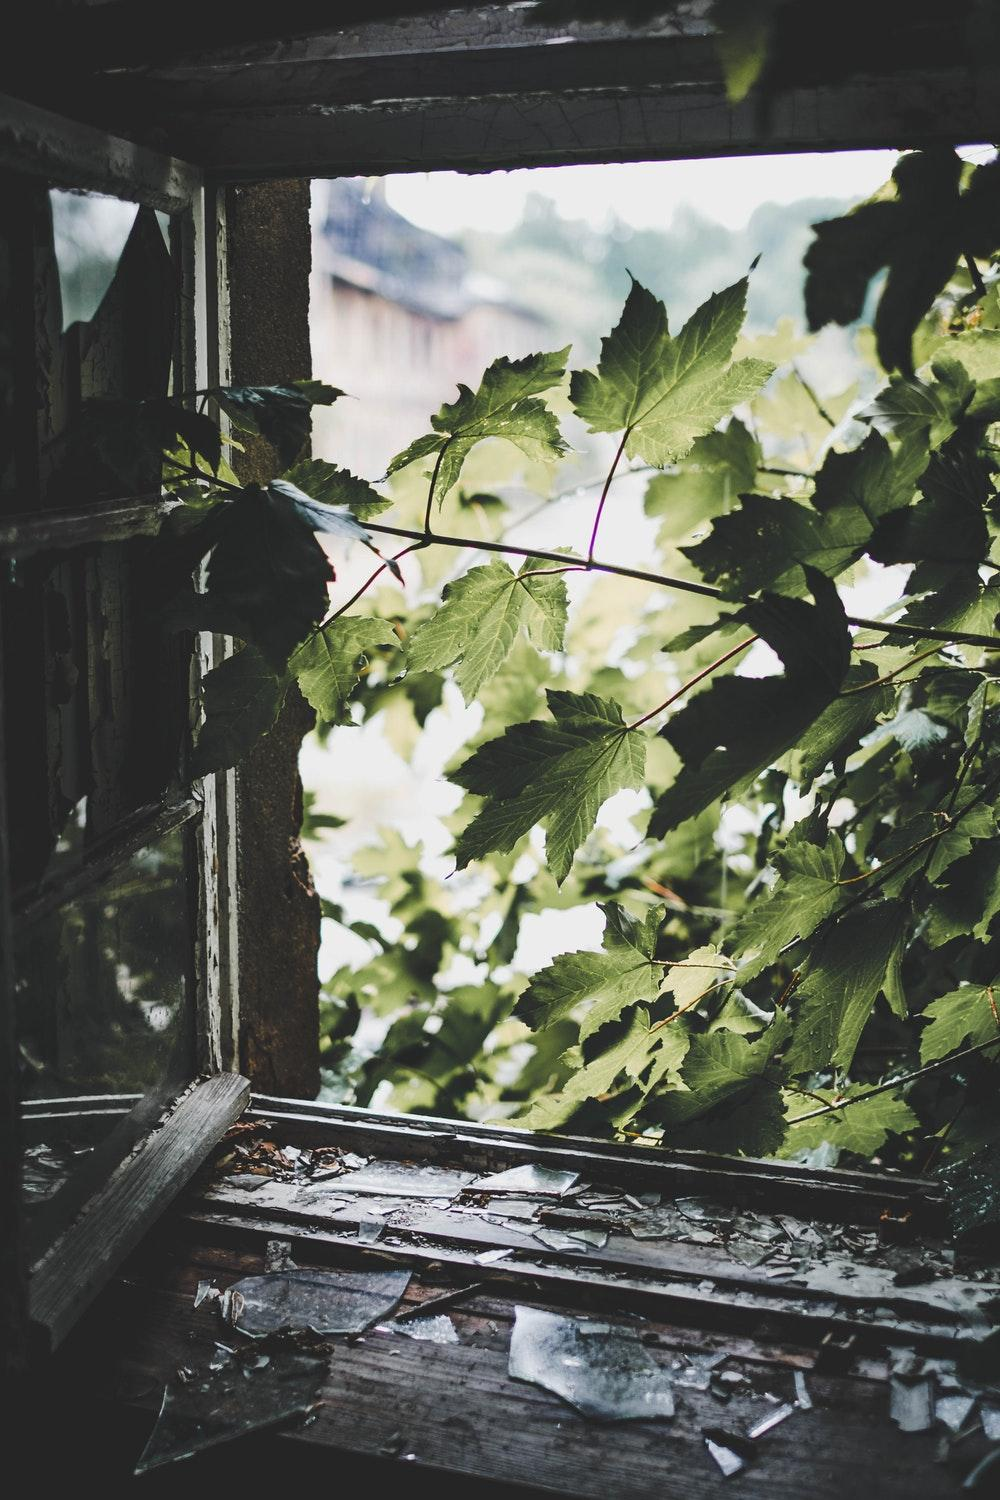 green leafed tree near window